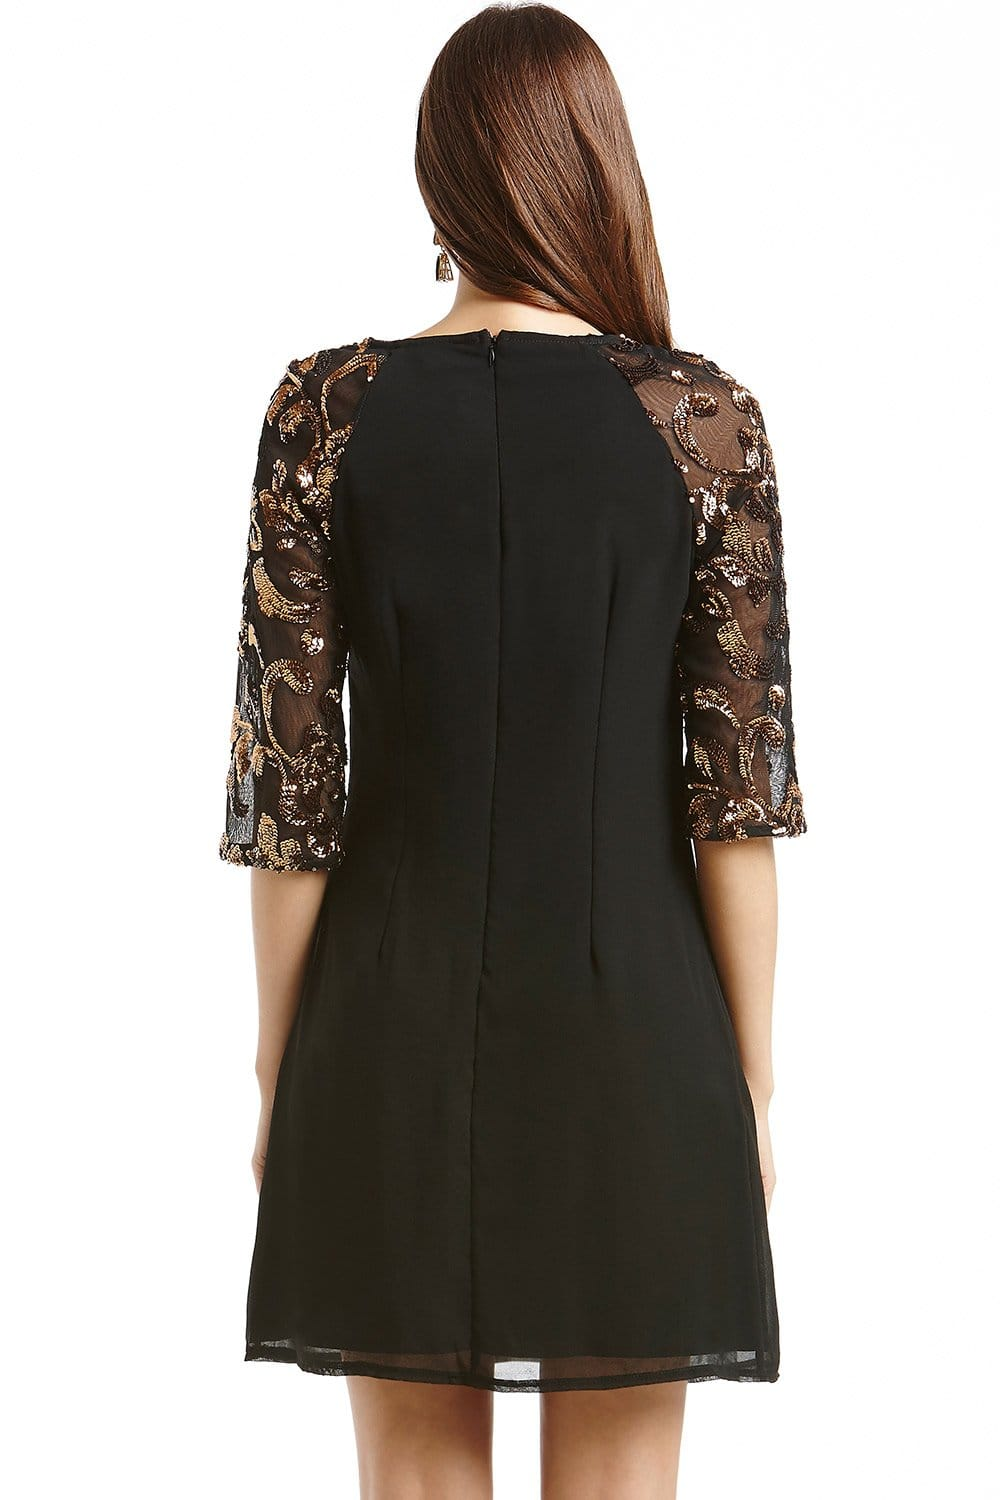 Black And Metallic Sequin Tunic Dress From Little